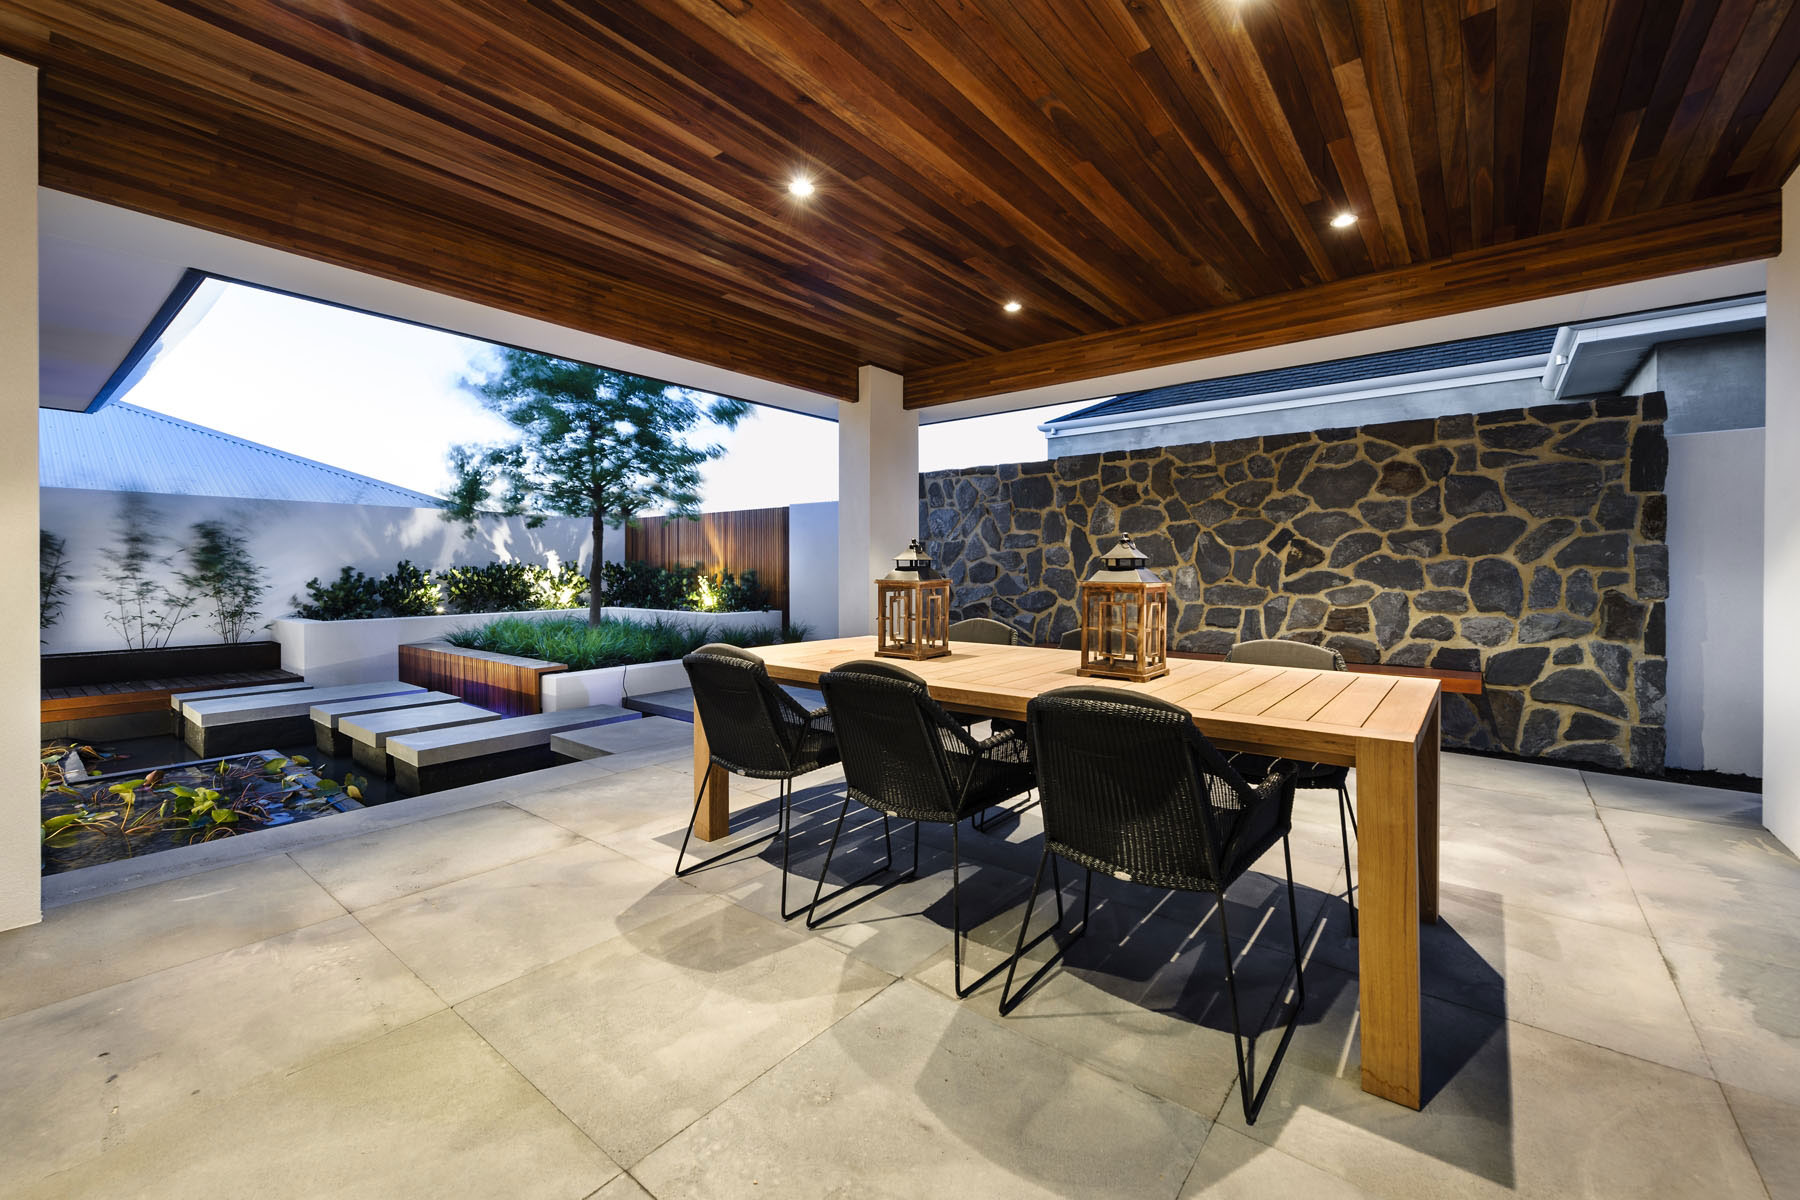 Water Feature, Outdoor Dining Table, Stone Wall, House in Burns Beach, Perth